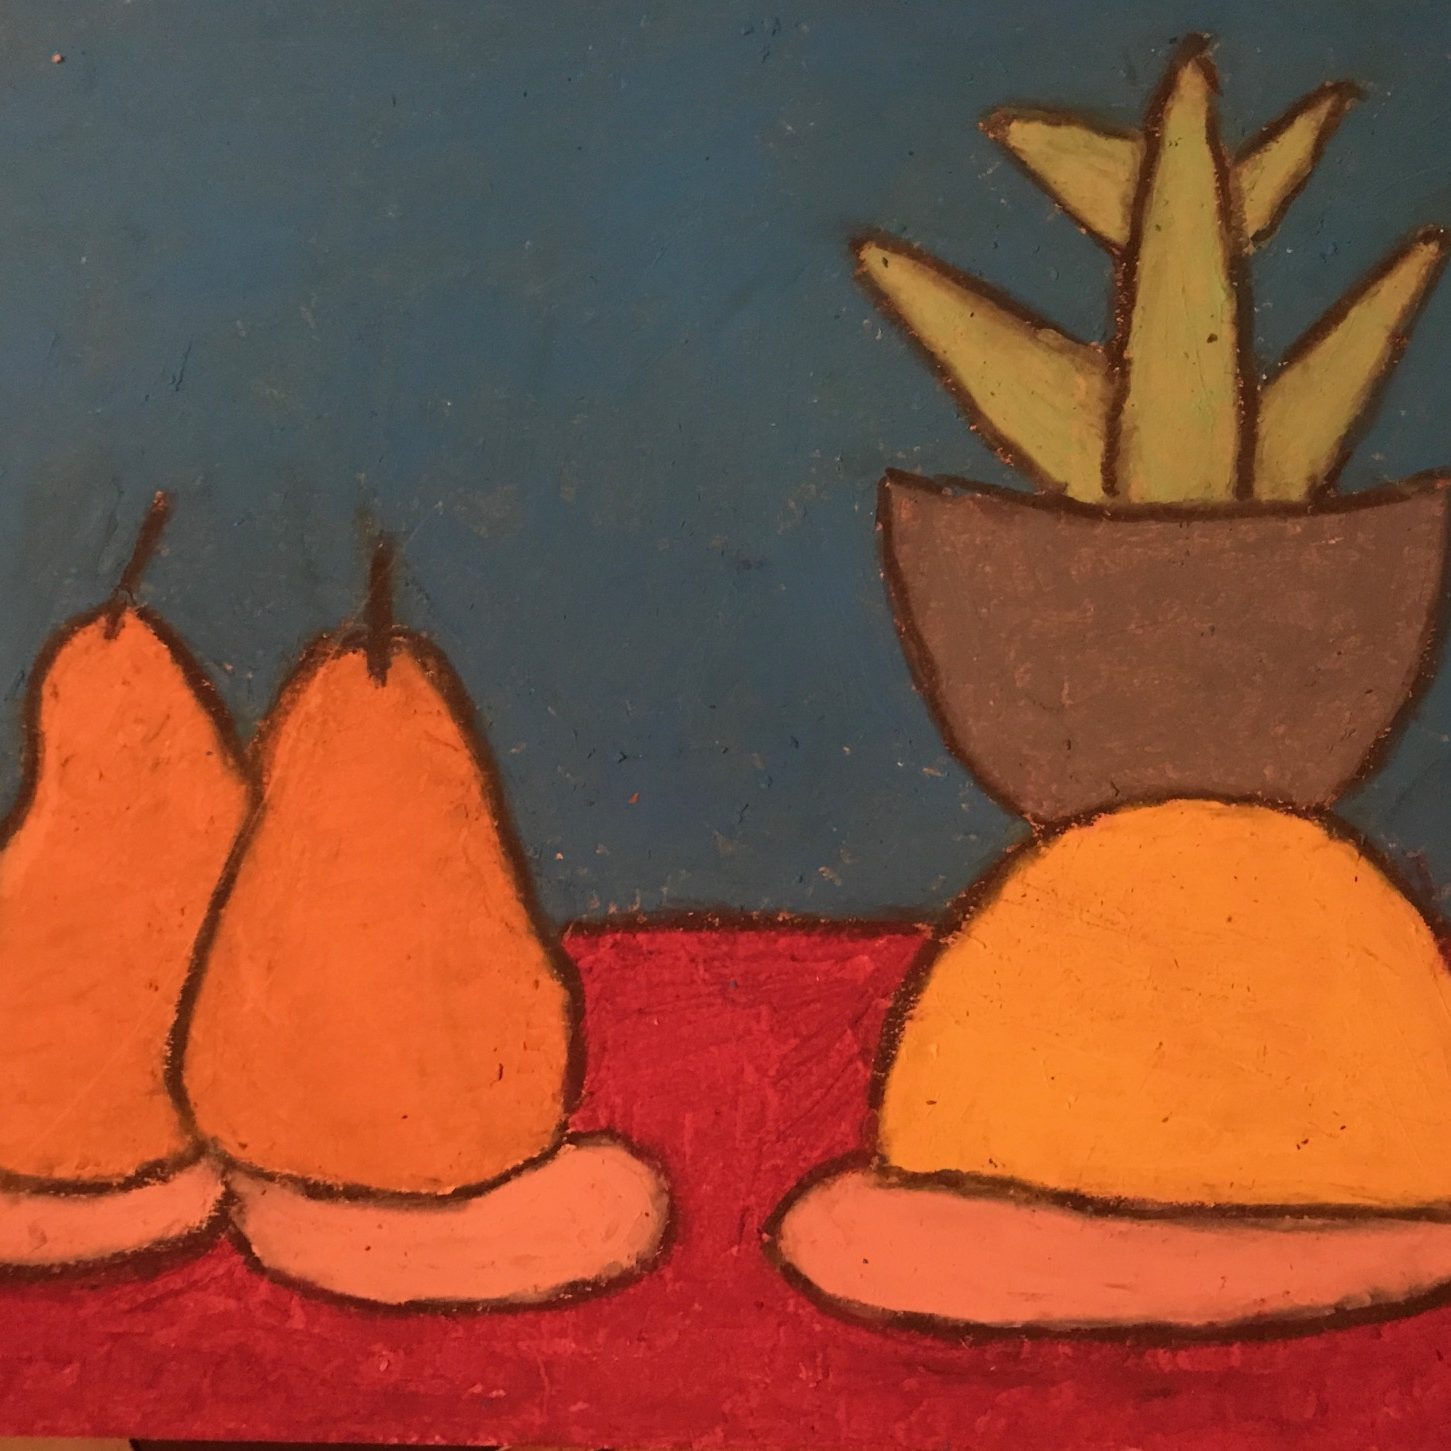 Oil pastel drawing of two pears, and orange, and a pant